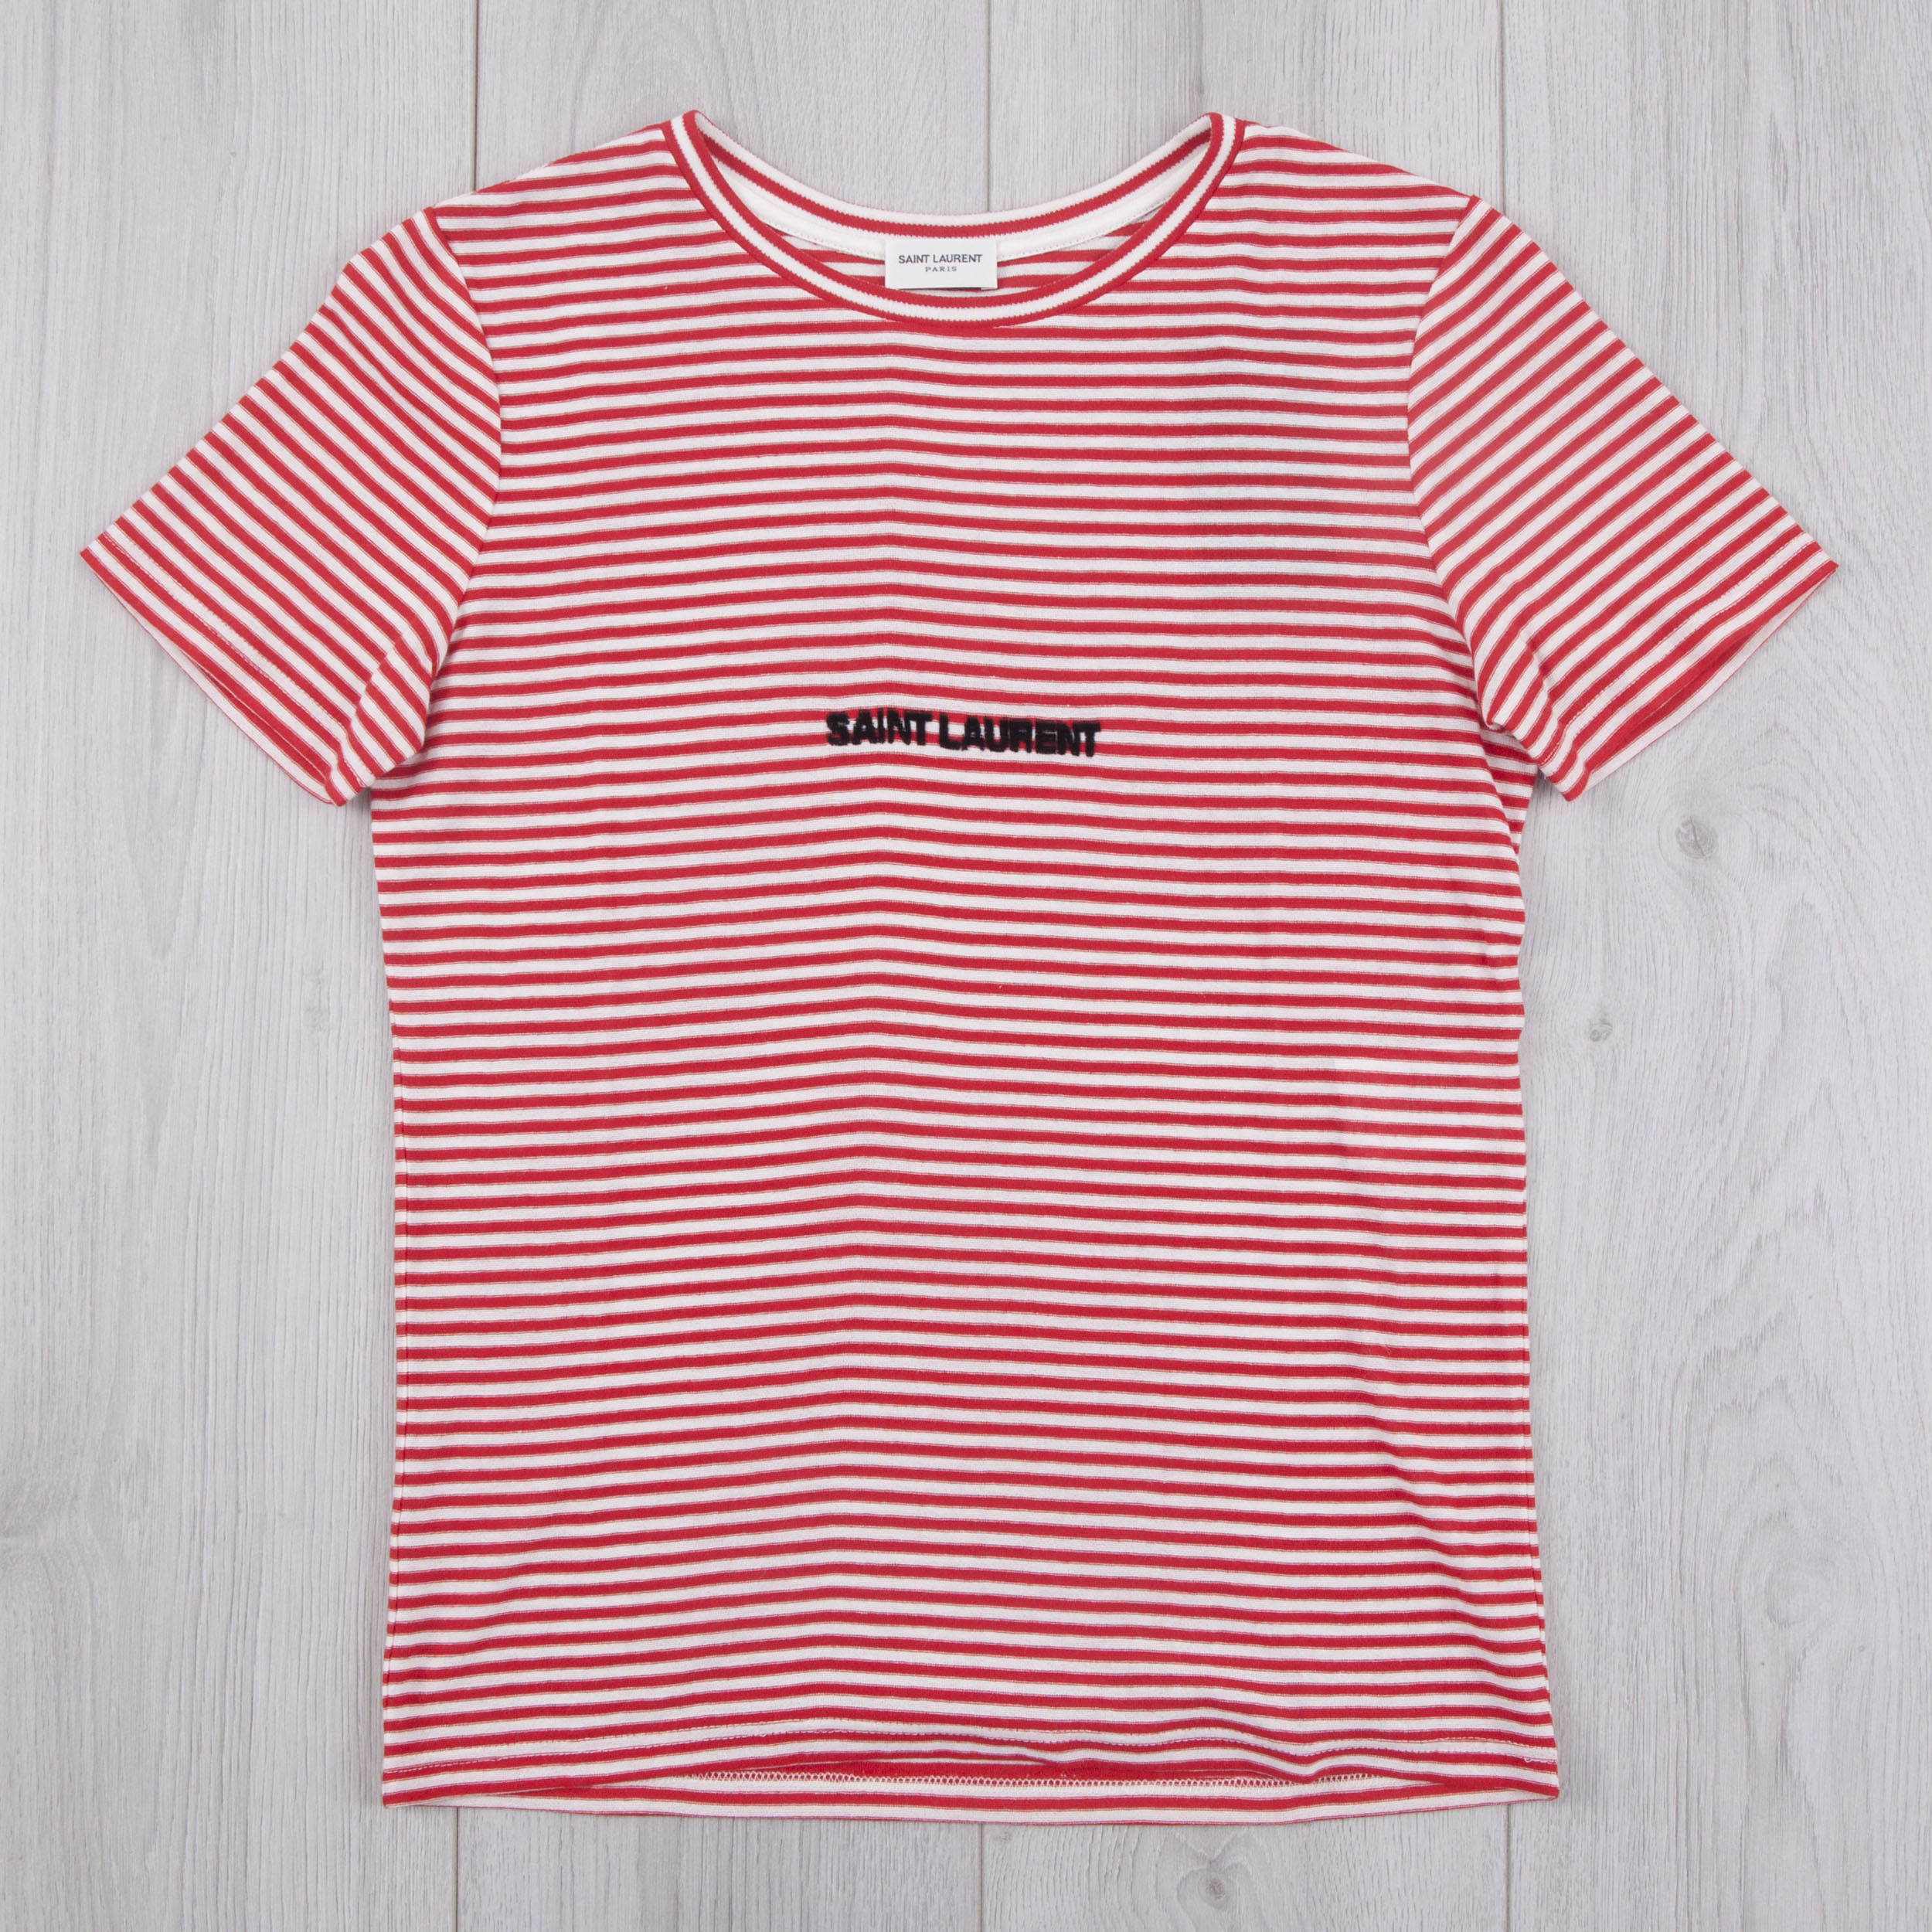 a5167275ee4 SAINT LAURENT PARIS 490$ Authentic New Red & White Striped Cotton ...